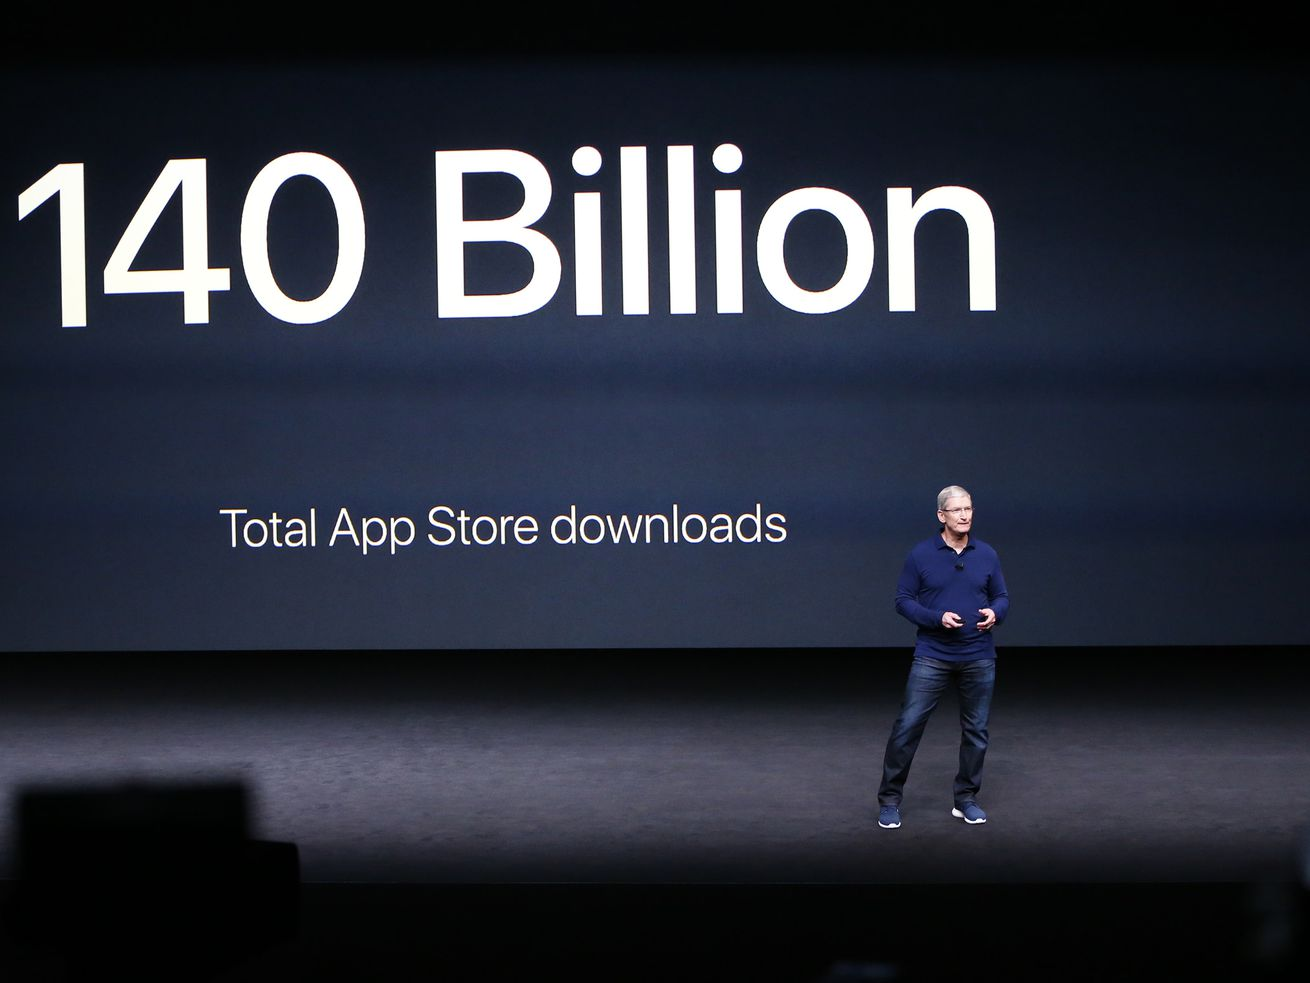 """Apple CEO Tim Cook onstage at an Apple event in front of a large screen that reads """"140 billion total app store downloads."""""""